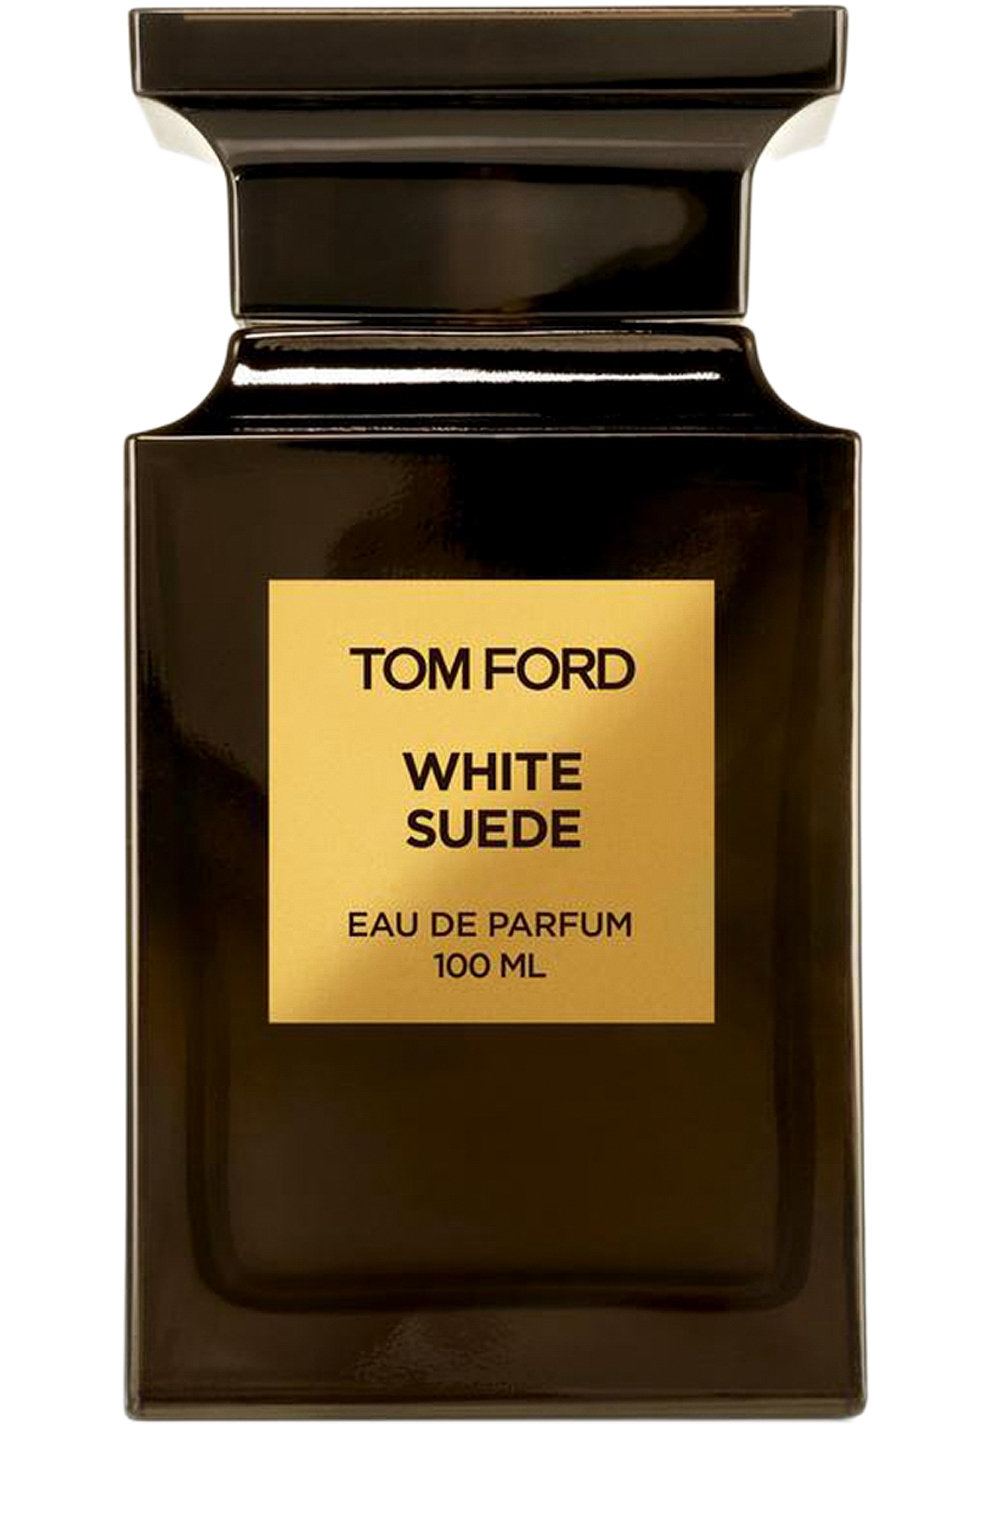 Парфюмерная вода Tom Ford White Suede 100ml фото